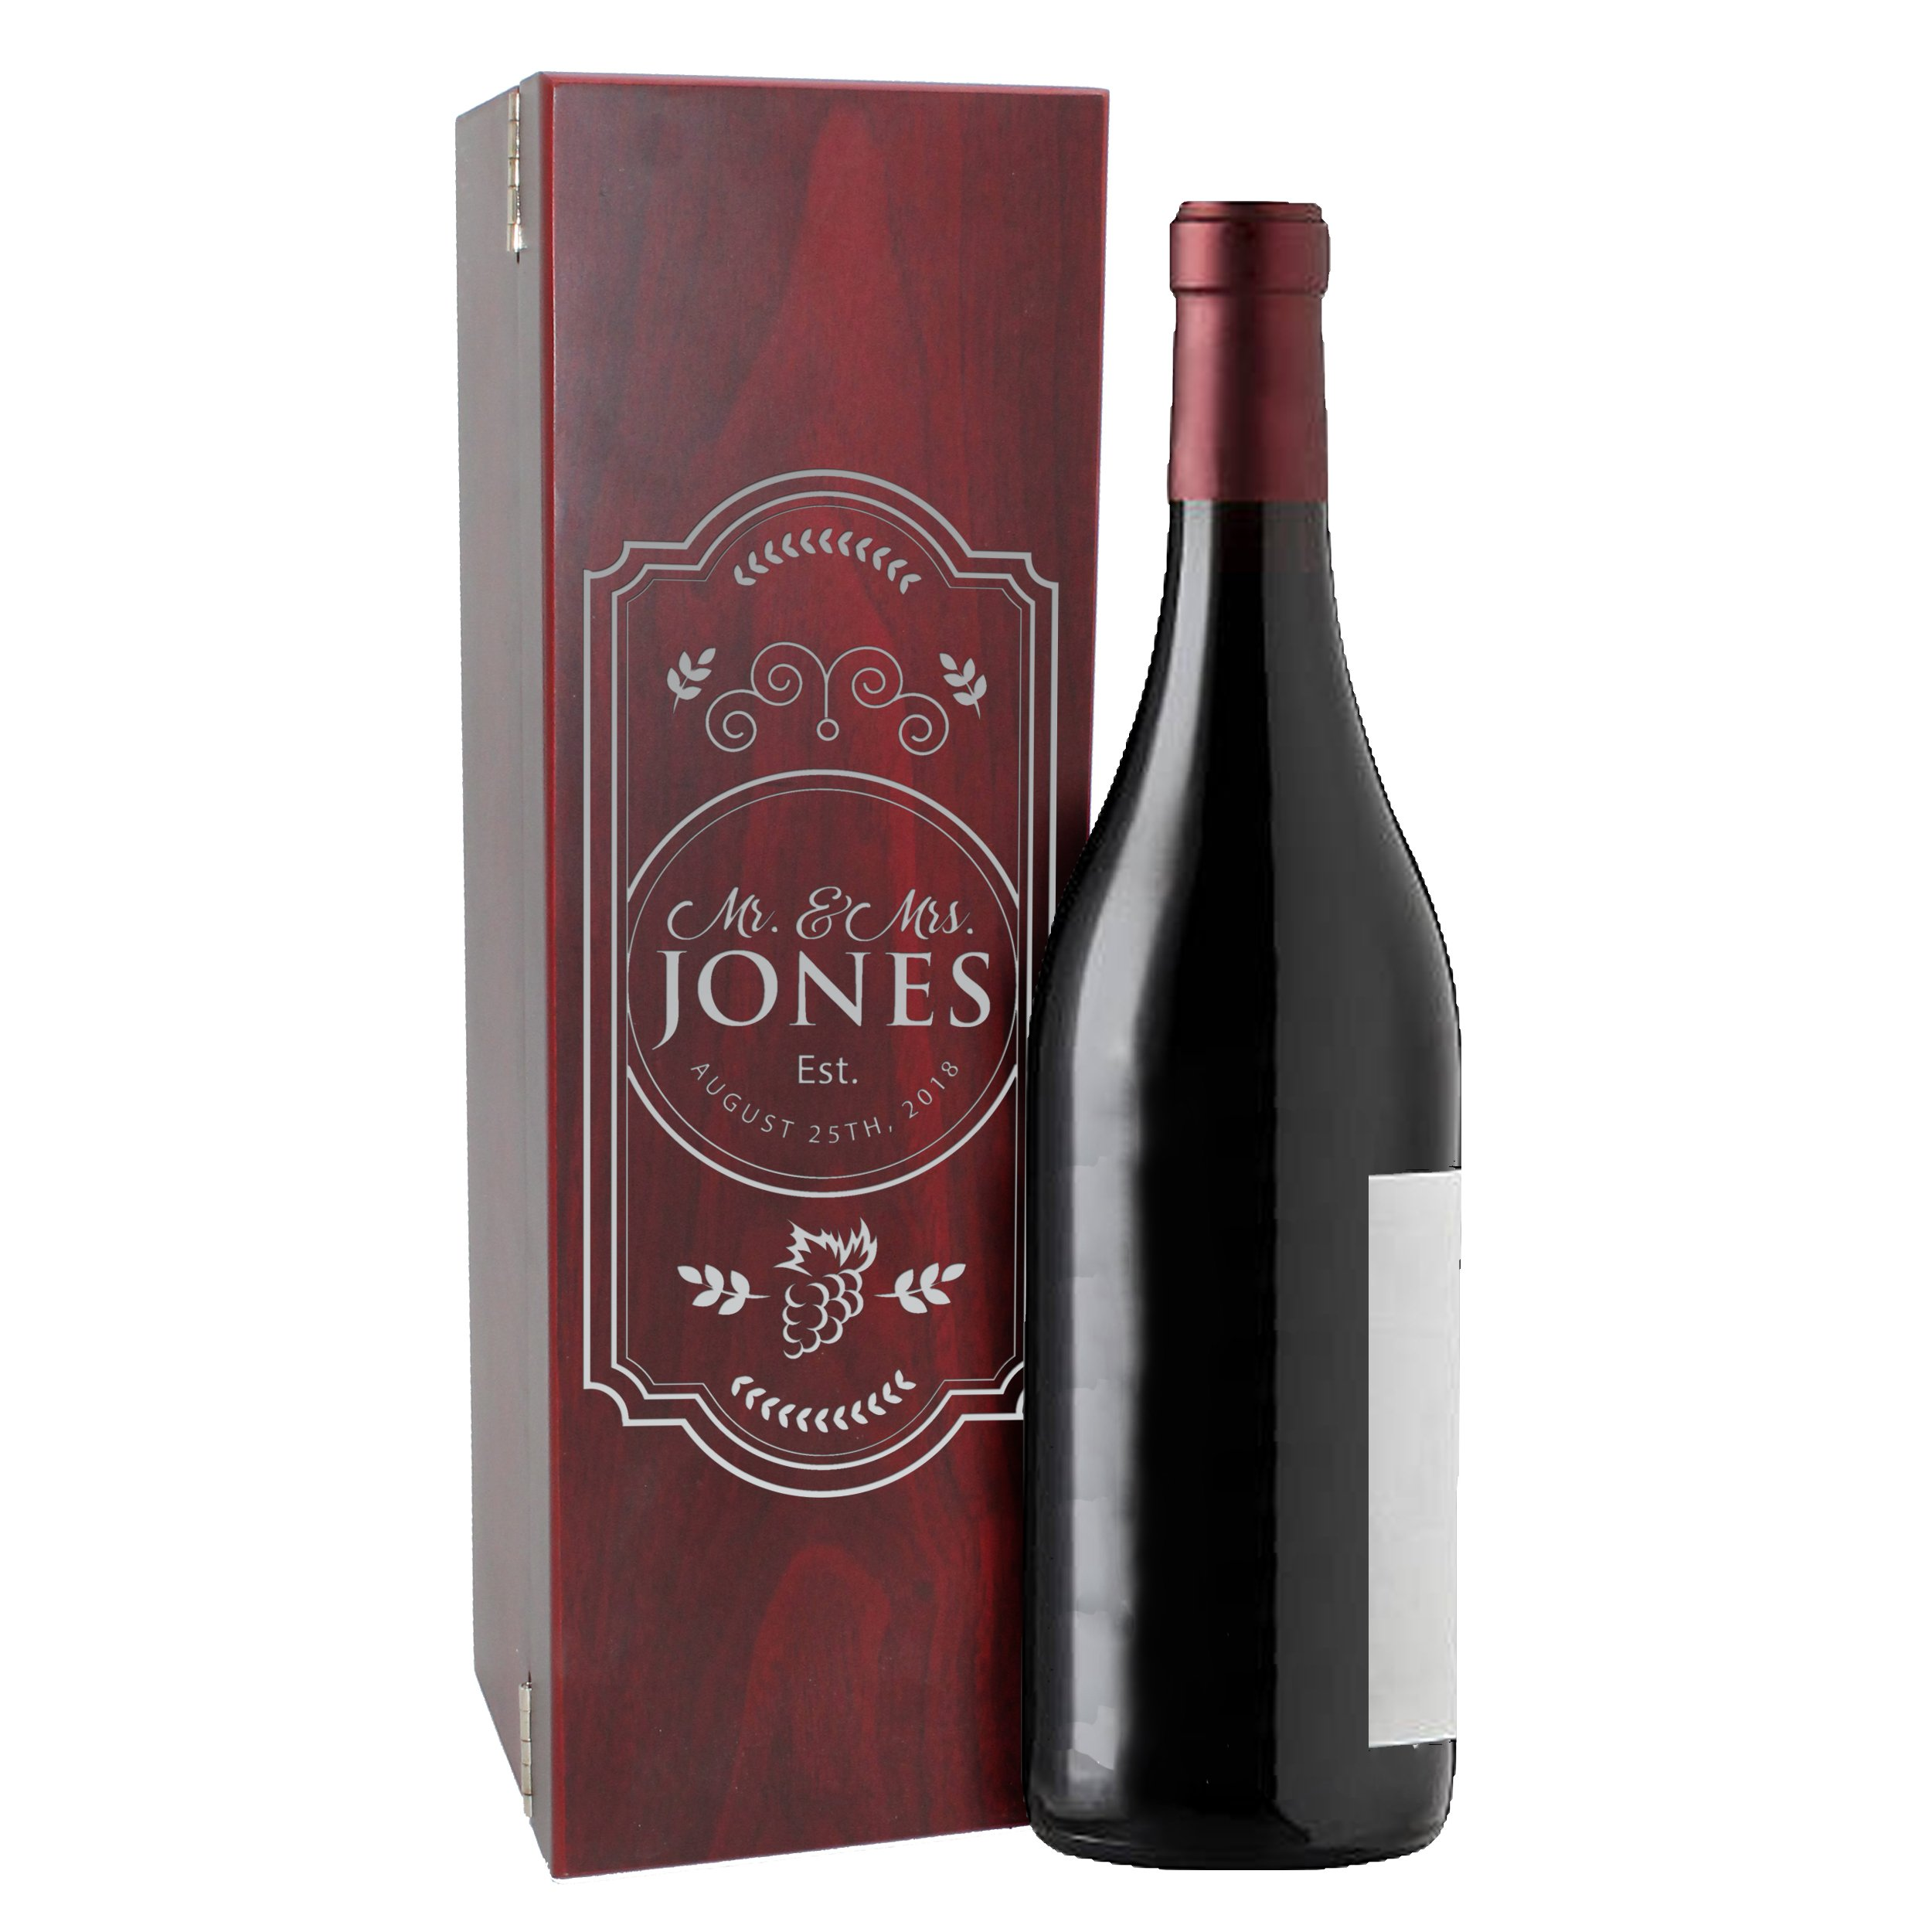 Personalized Wood Wine Box - Anniversary Ceremony Couples Wedding Wine Gift Box Holder - Custom Engraved for Free (Rosewood) by My Personal Memories (Image #3)